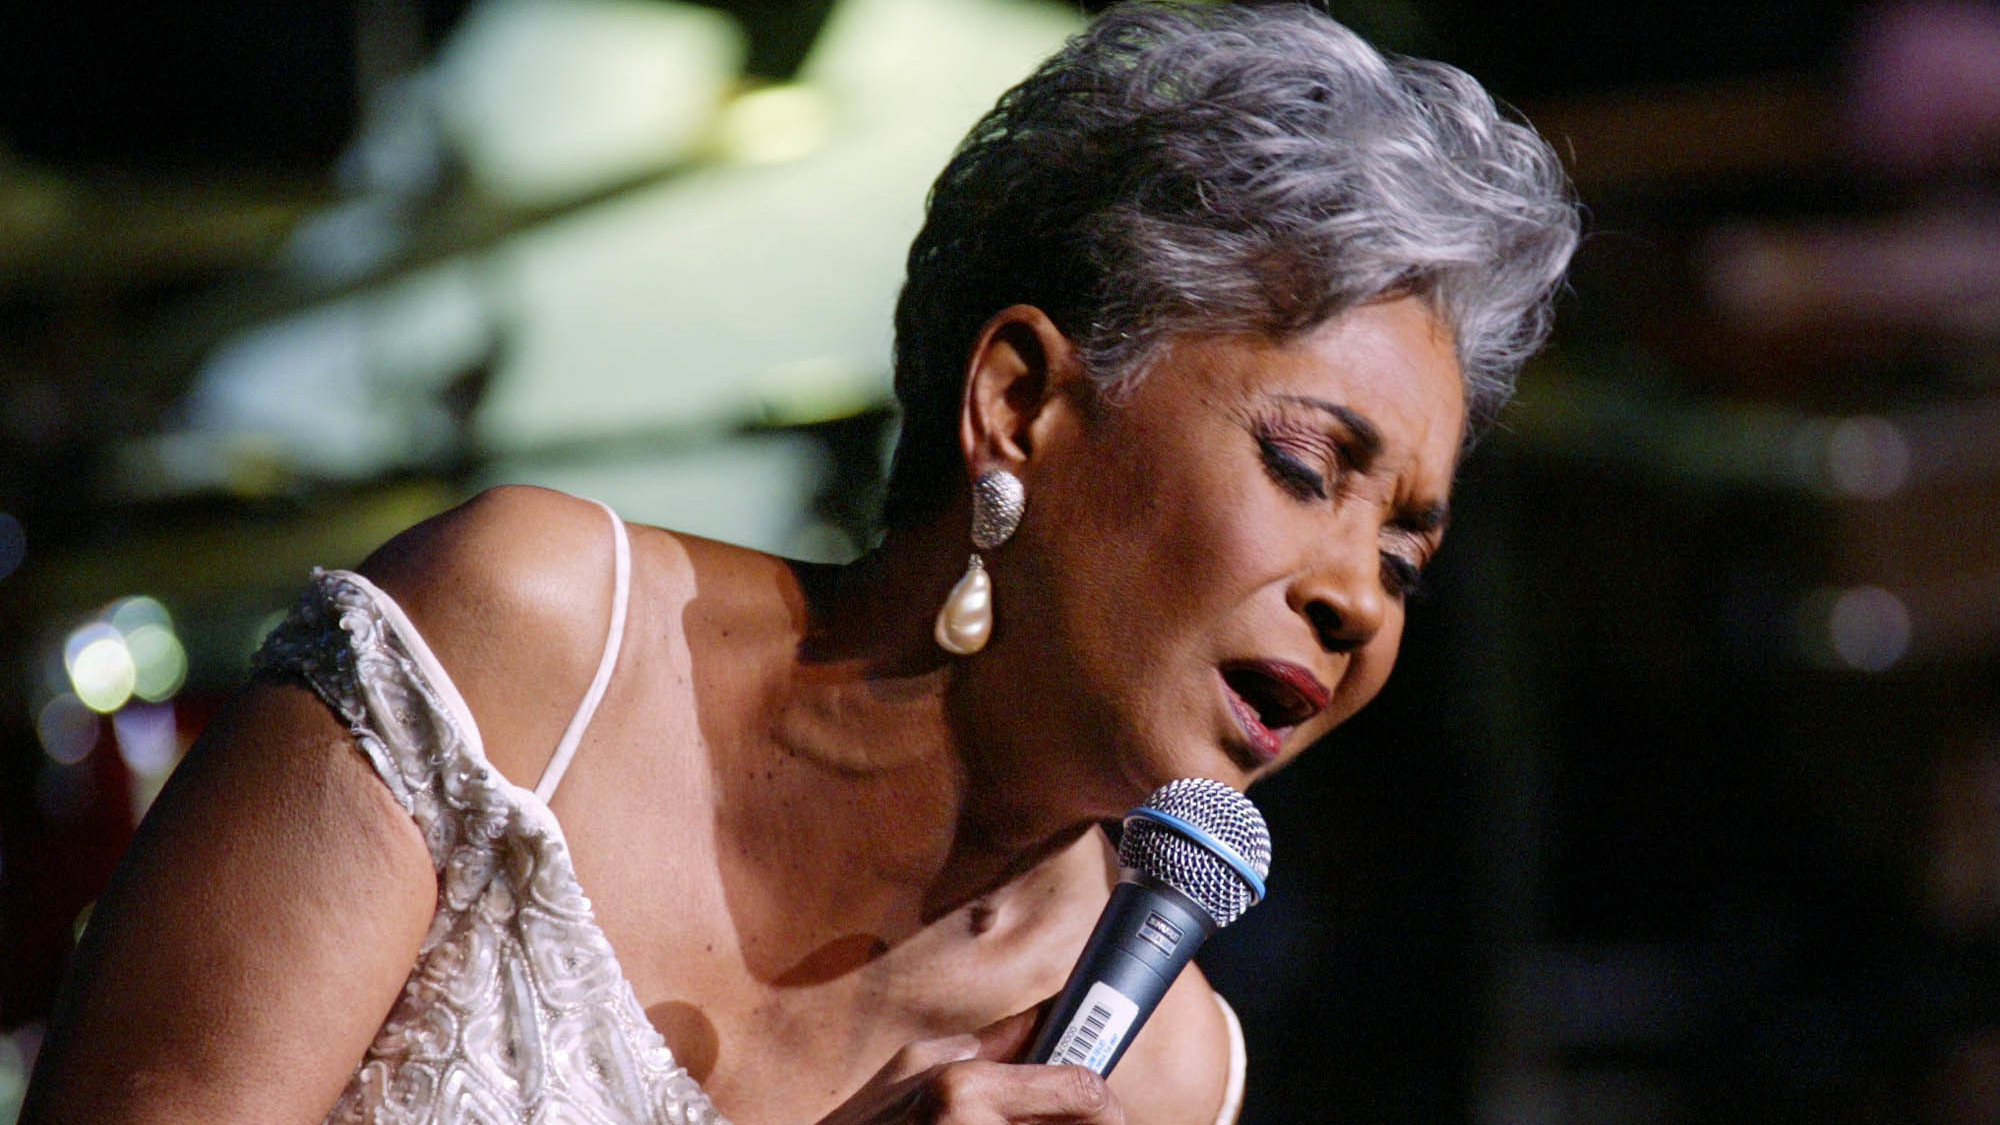 """Grammy-winning singer Nancy Wilson performs in 2003 at Lincoln Center's Avery Fisher Hall in New York during a concert titled """"Nancy Wilson With Strings: Celebrating Four Decades of Music."""""""